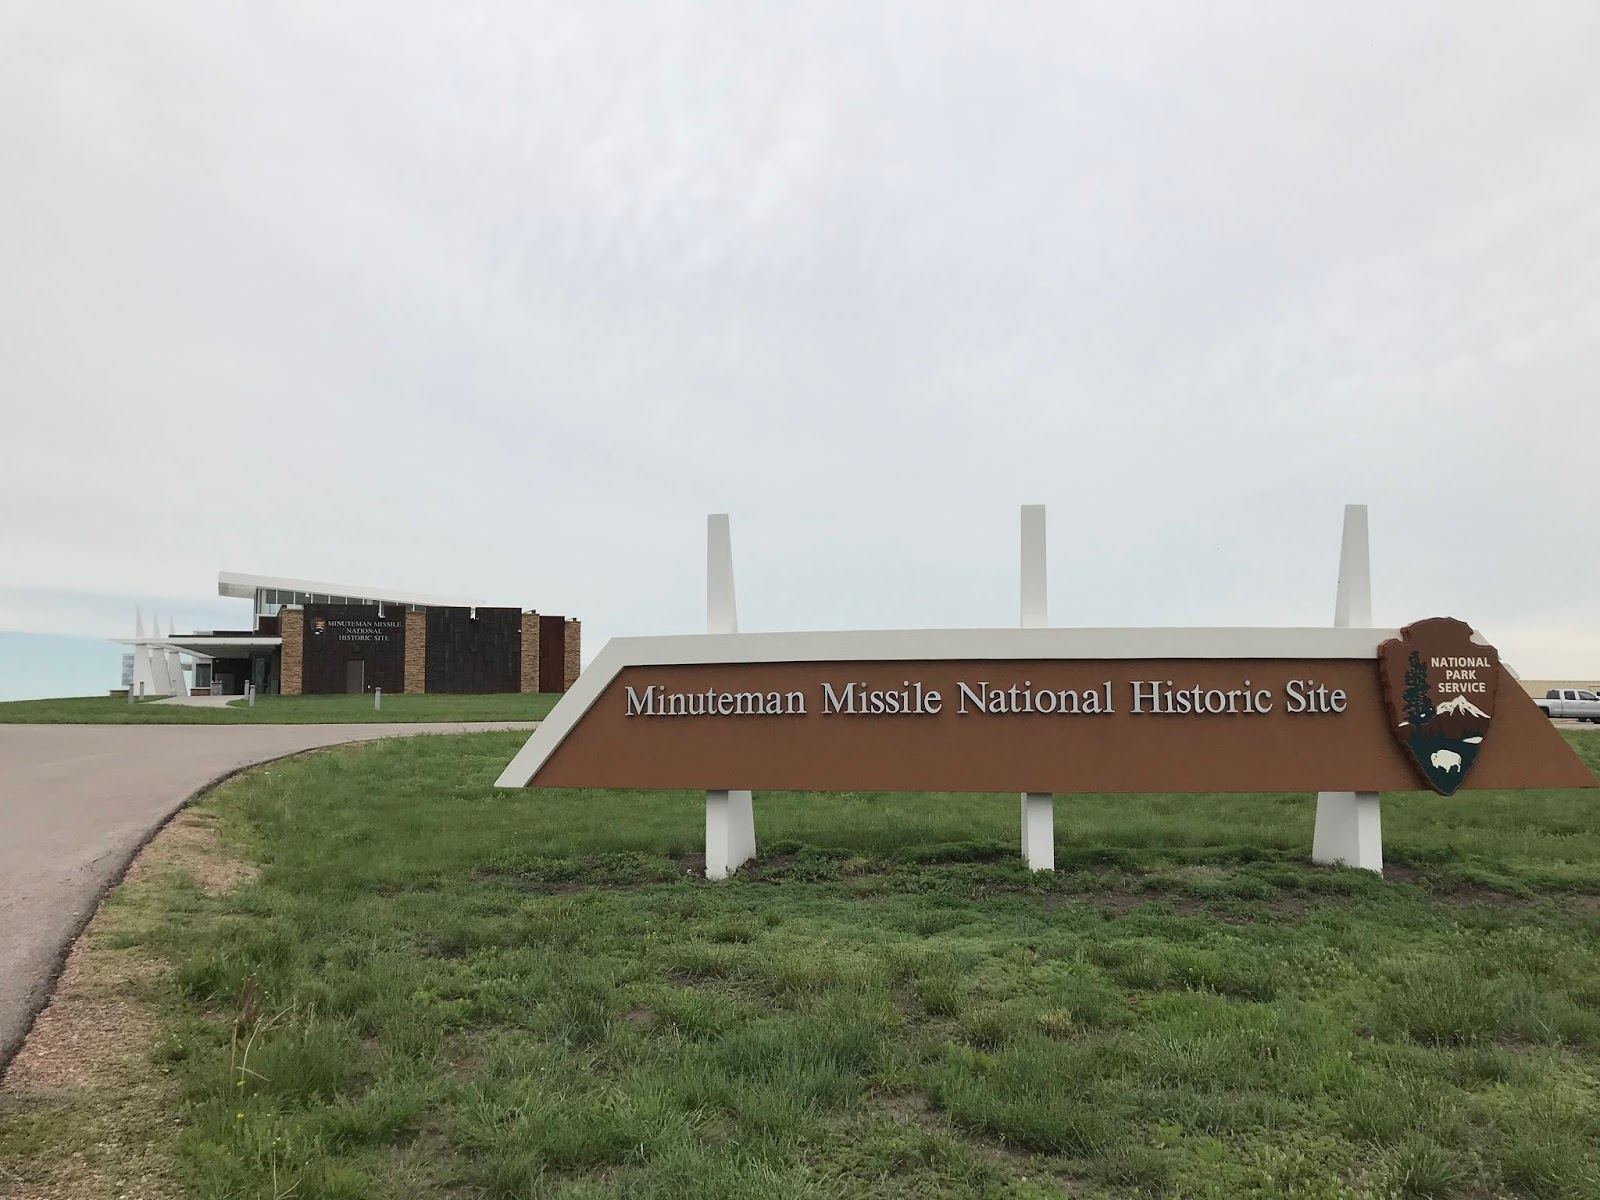 before we went to delta 01 we watched a brand new 30 minute movie called beneath the plains the minuteman missile on alert the national parks released